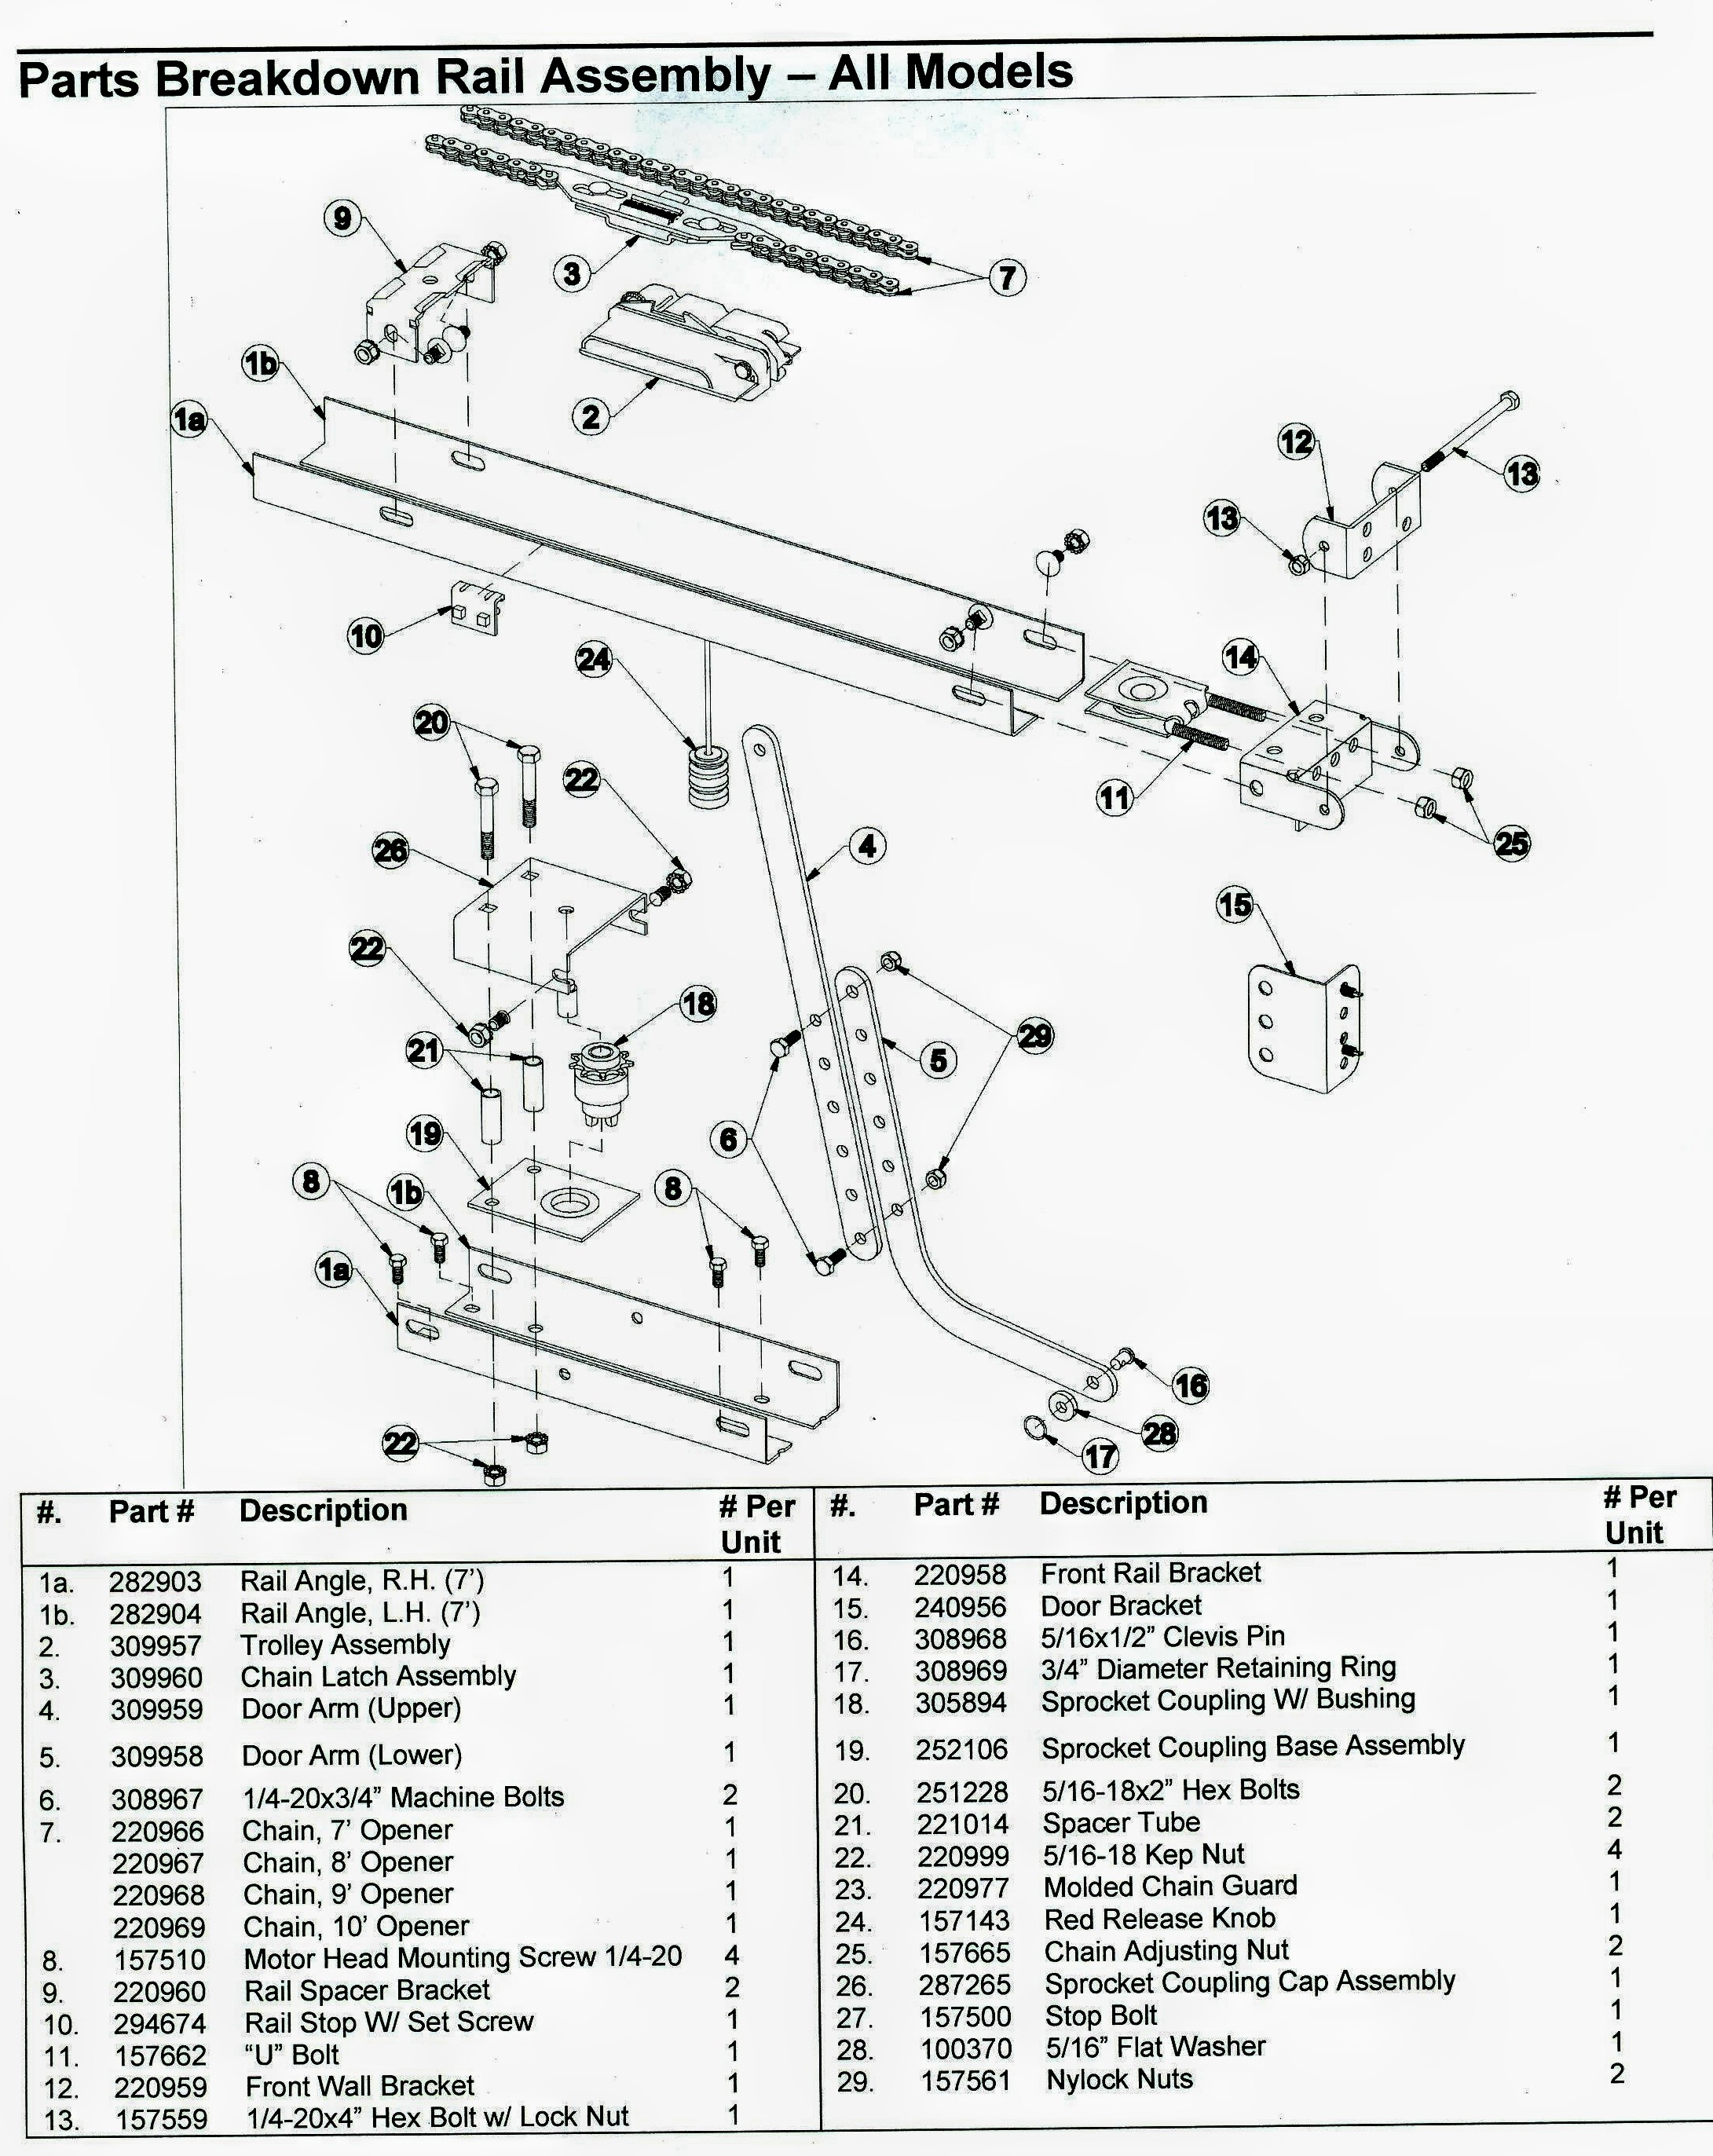 wiring diagram for liftmaster garage door opener wiring diagram throughout liftmaster garage door opener parts diagram liftmaster garage door opener parts diagram automotive parts Chamberlain LiftMaster Professional 1 2 HP at n-0.co